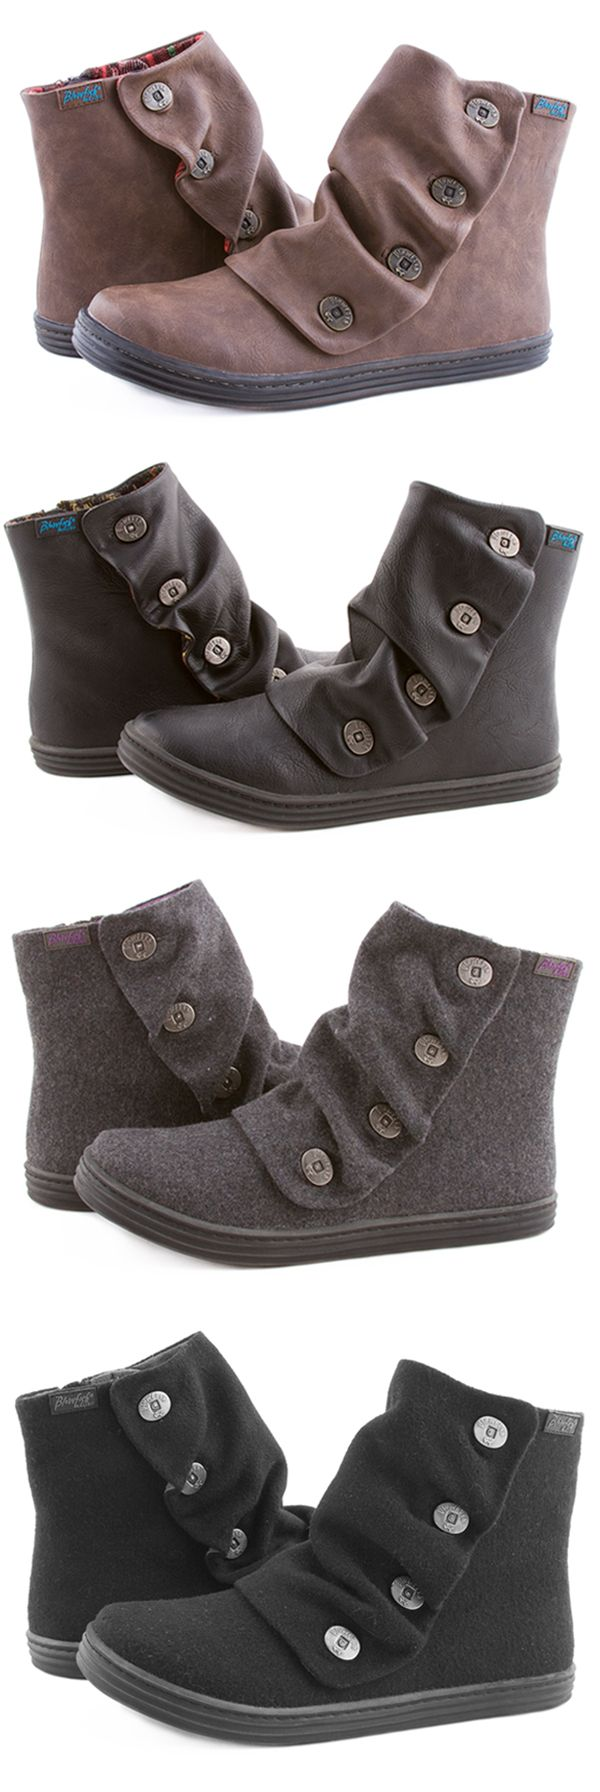 Keep warm with style in the Rabbit ankle bootie. Features include a variety of woven fabrics, soft faux leathers, warm faux suedes, gathered detailing and our signature Blowfish button accents. Don't forget to grab your hat, gloves, and Rabbit boots to complete your winter essentials! This style tends to run a little small, we recommend going a 1/2 size up!